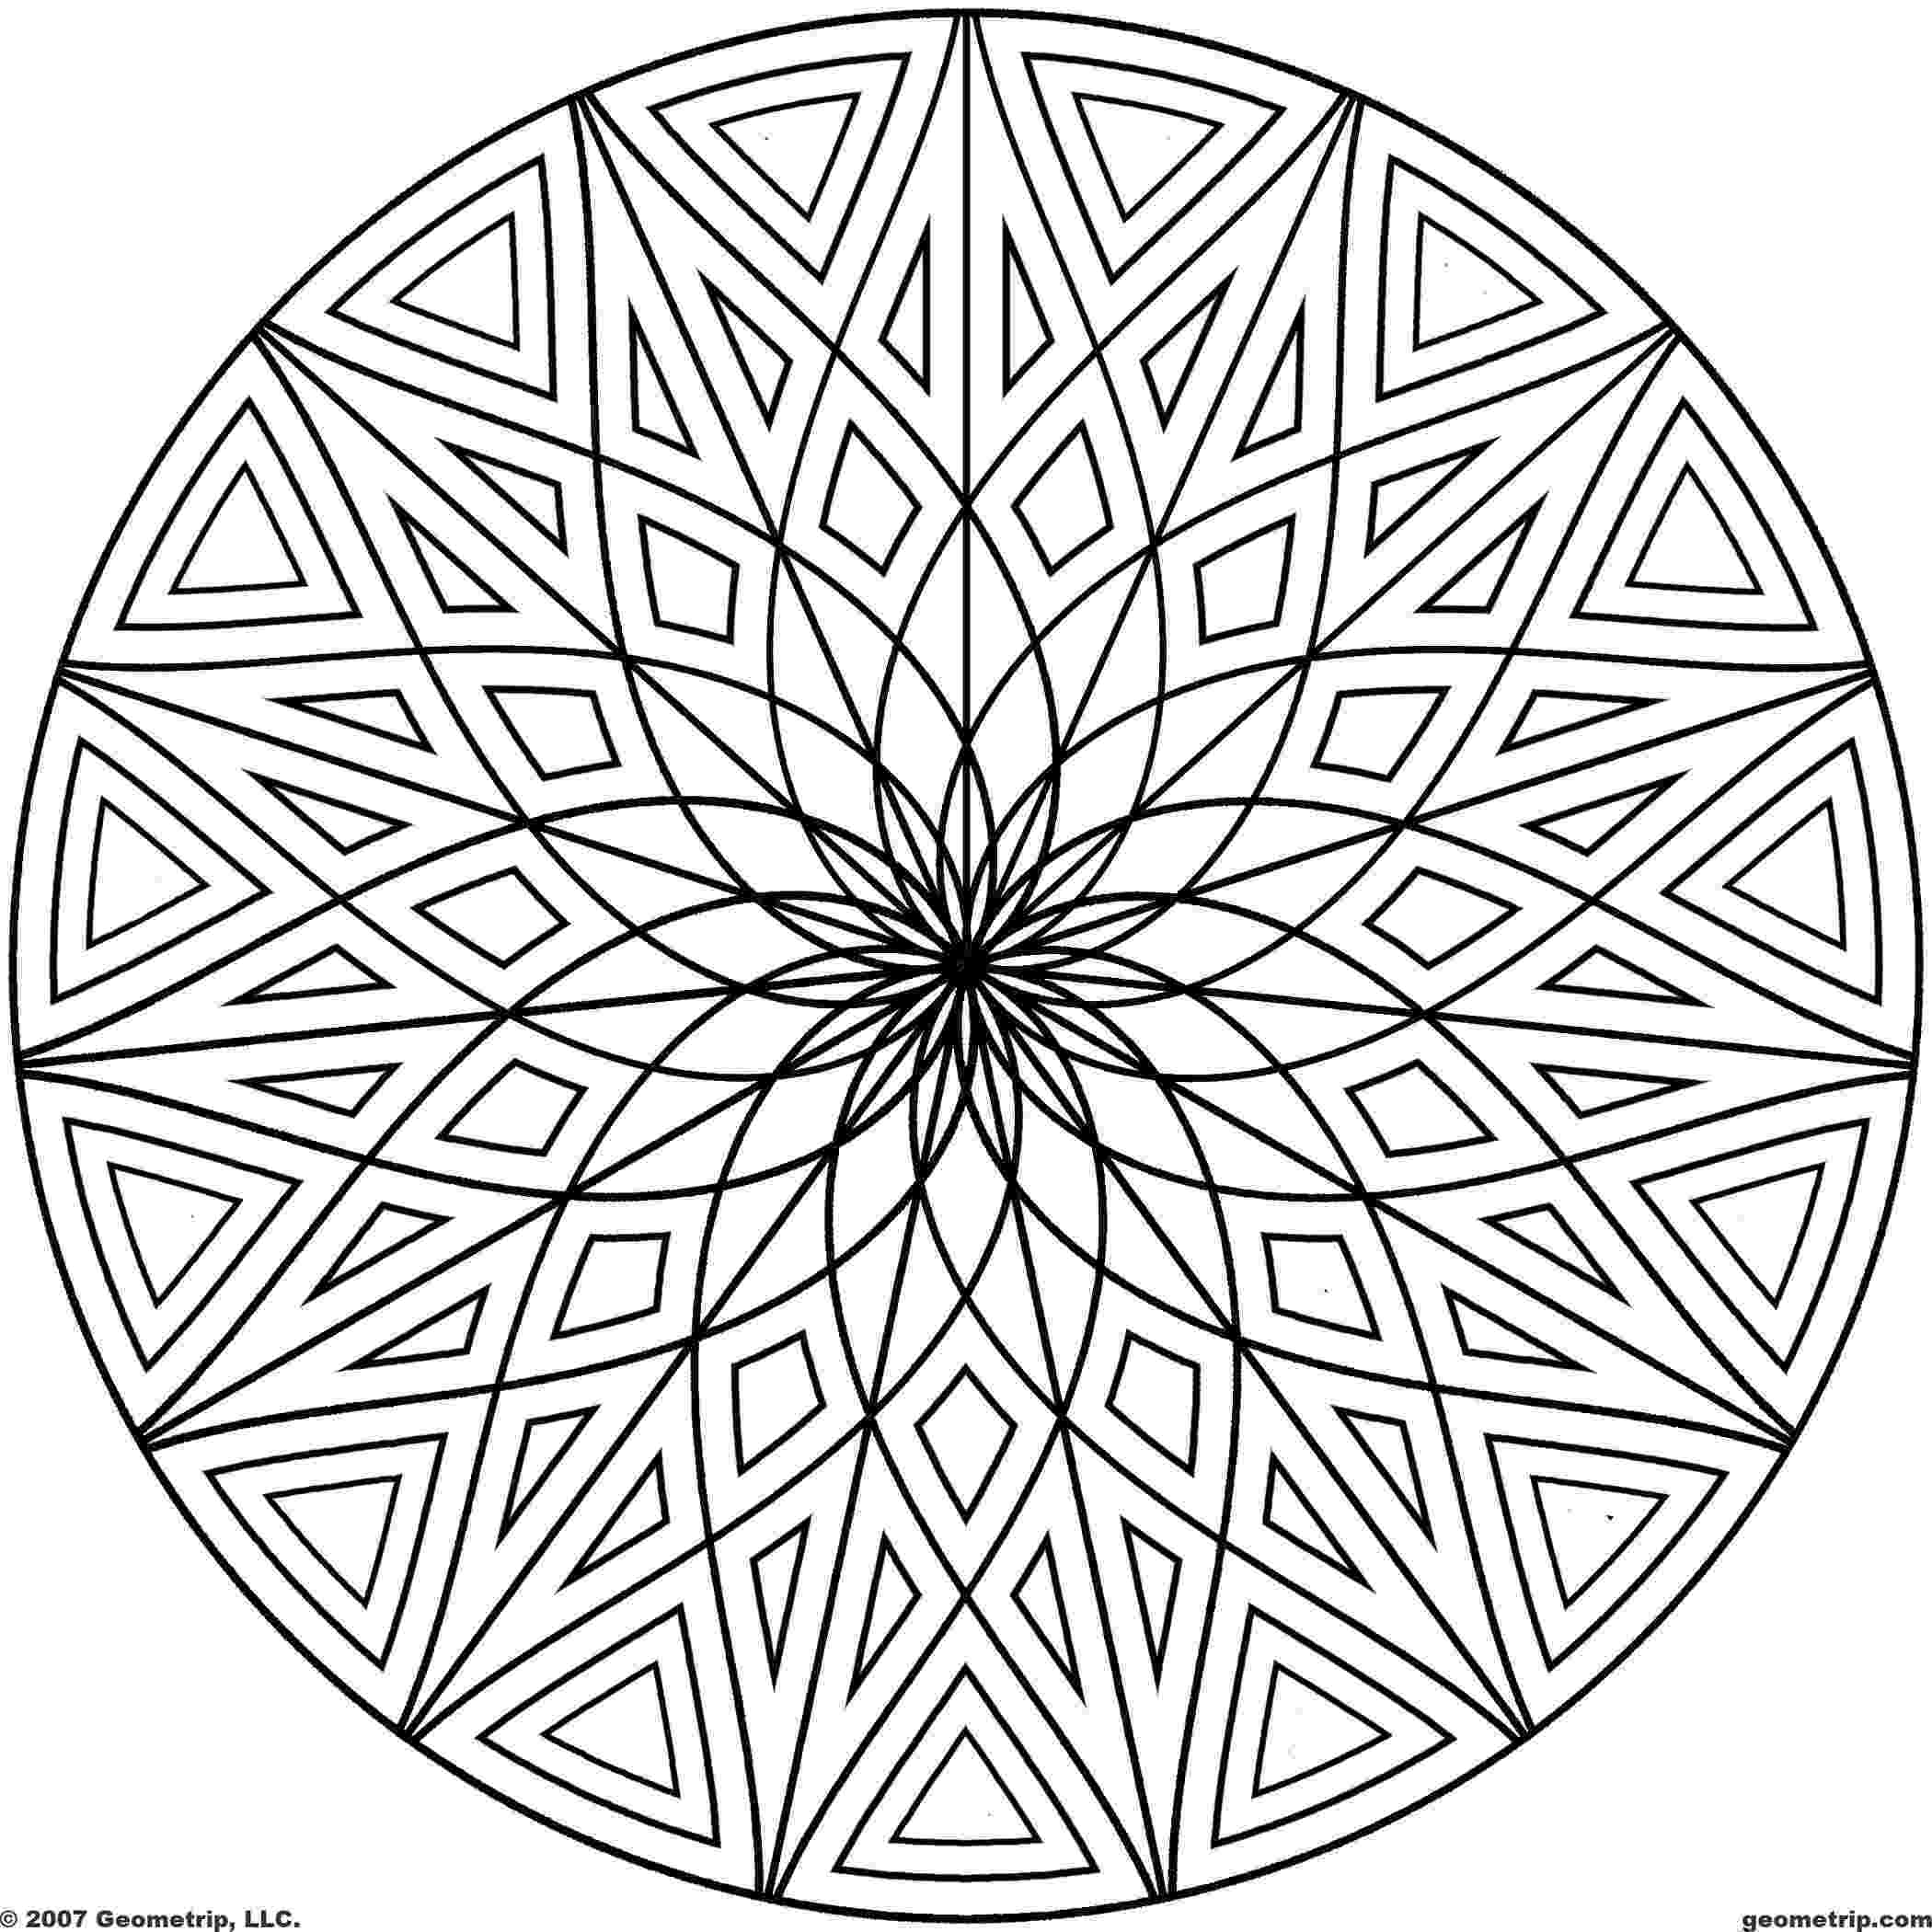 cool pictures to color and print 16 cool coloring pages of designs images cool geometric print cool and pictures to color